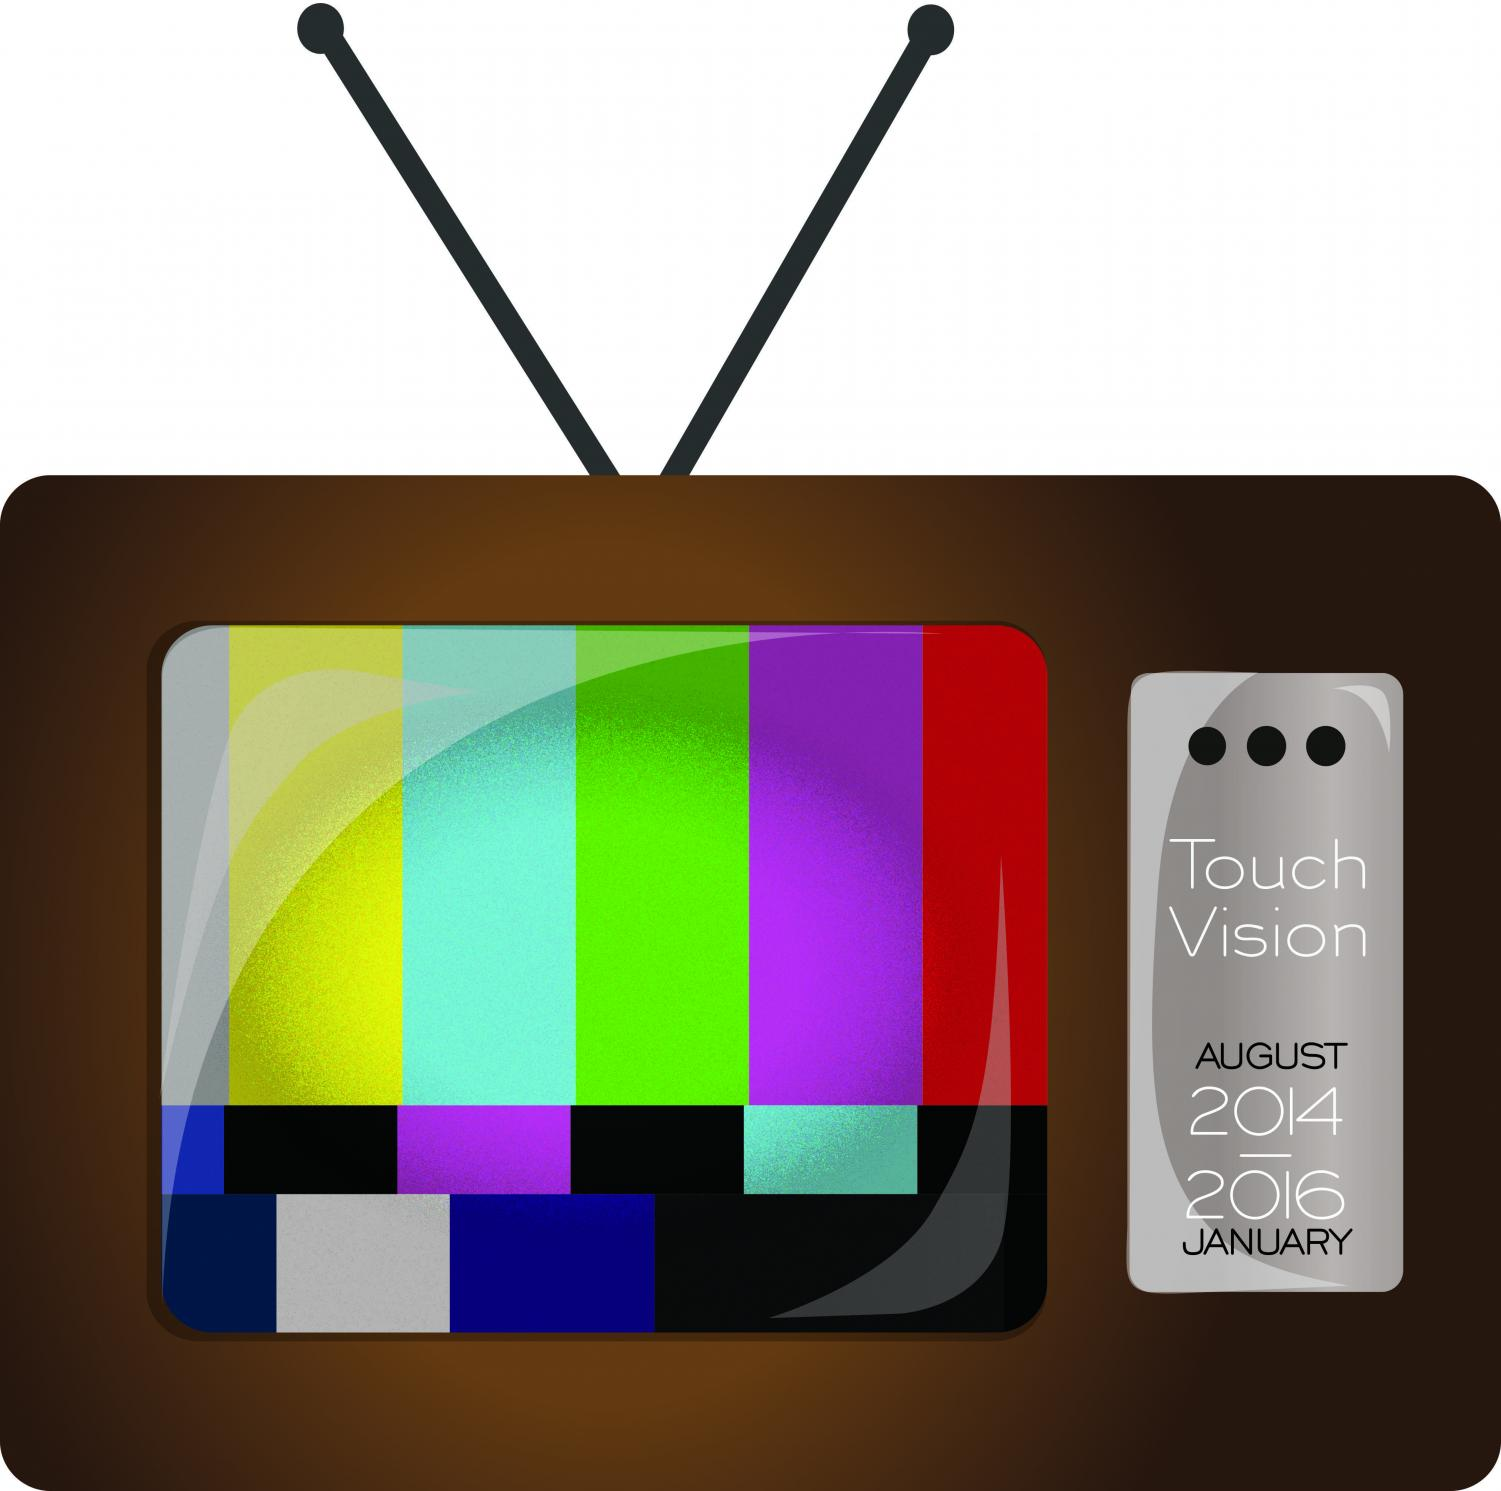 TouchVision tarted as a new company in August 2014 and closed in January 2016.